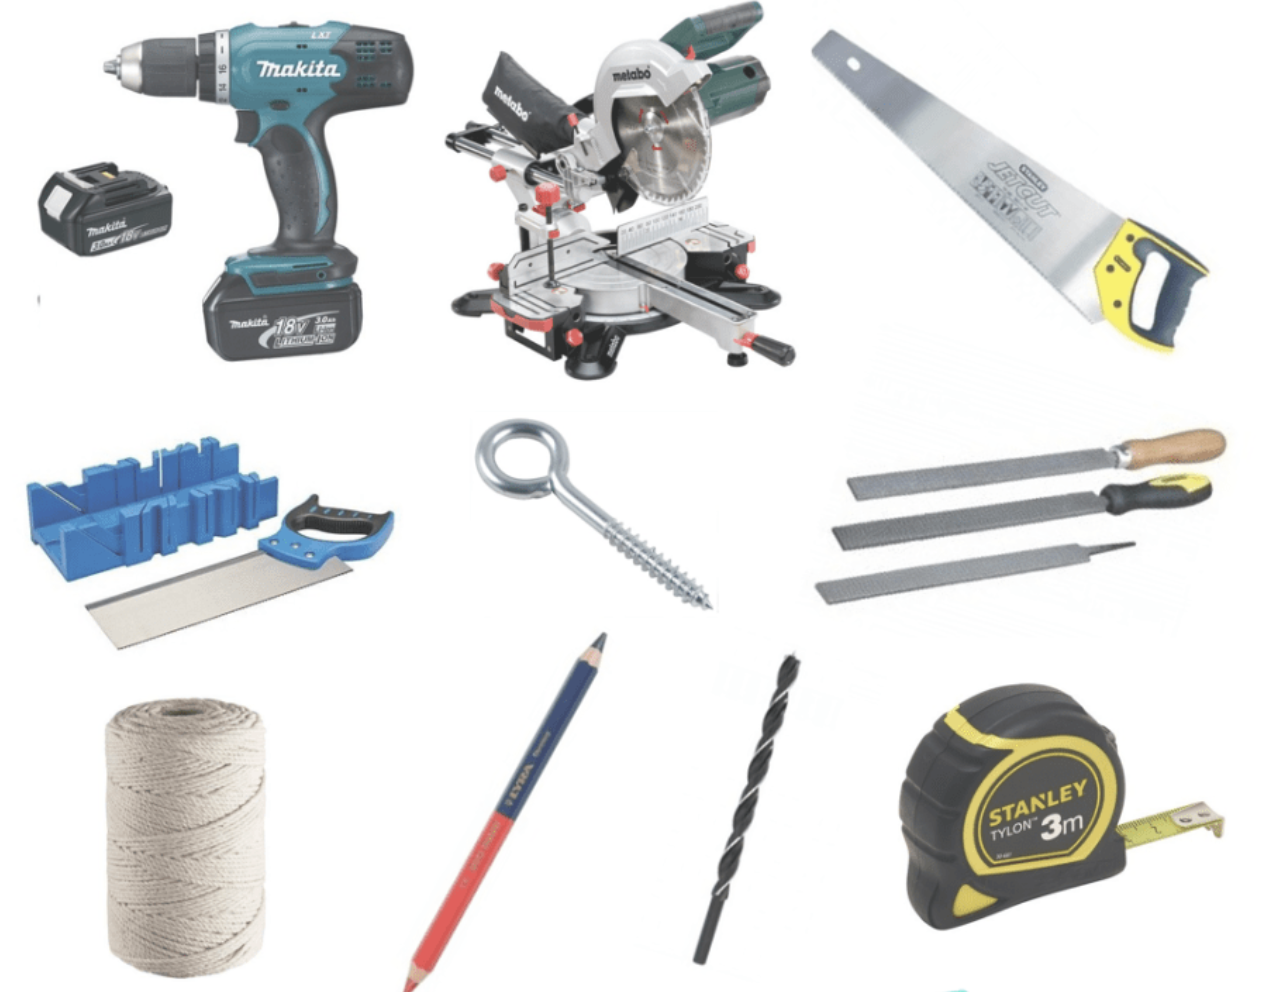 The tools you need for the DIY bird feeder project